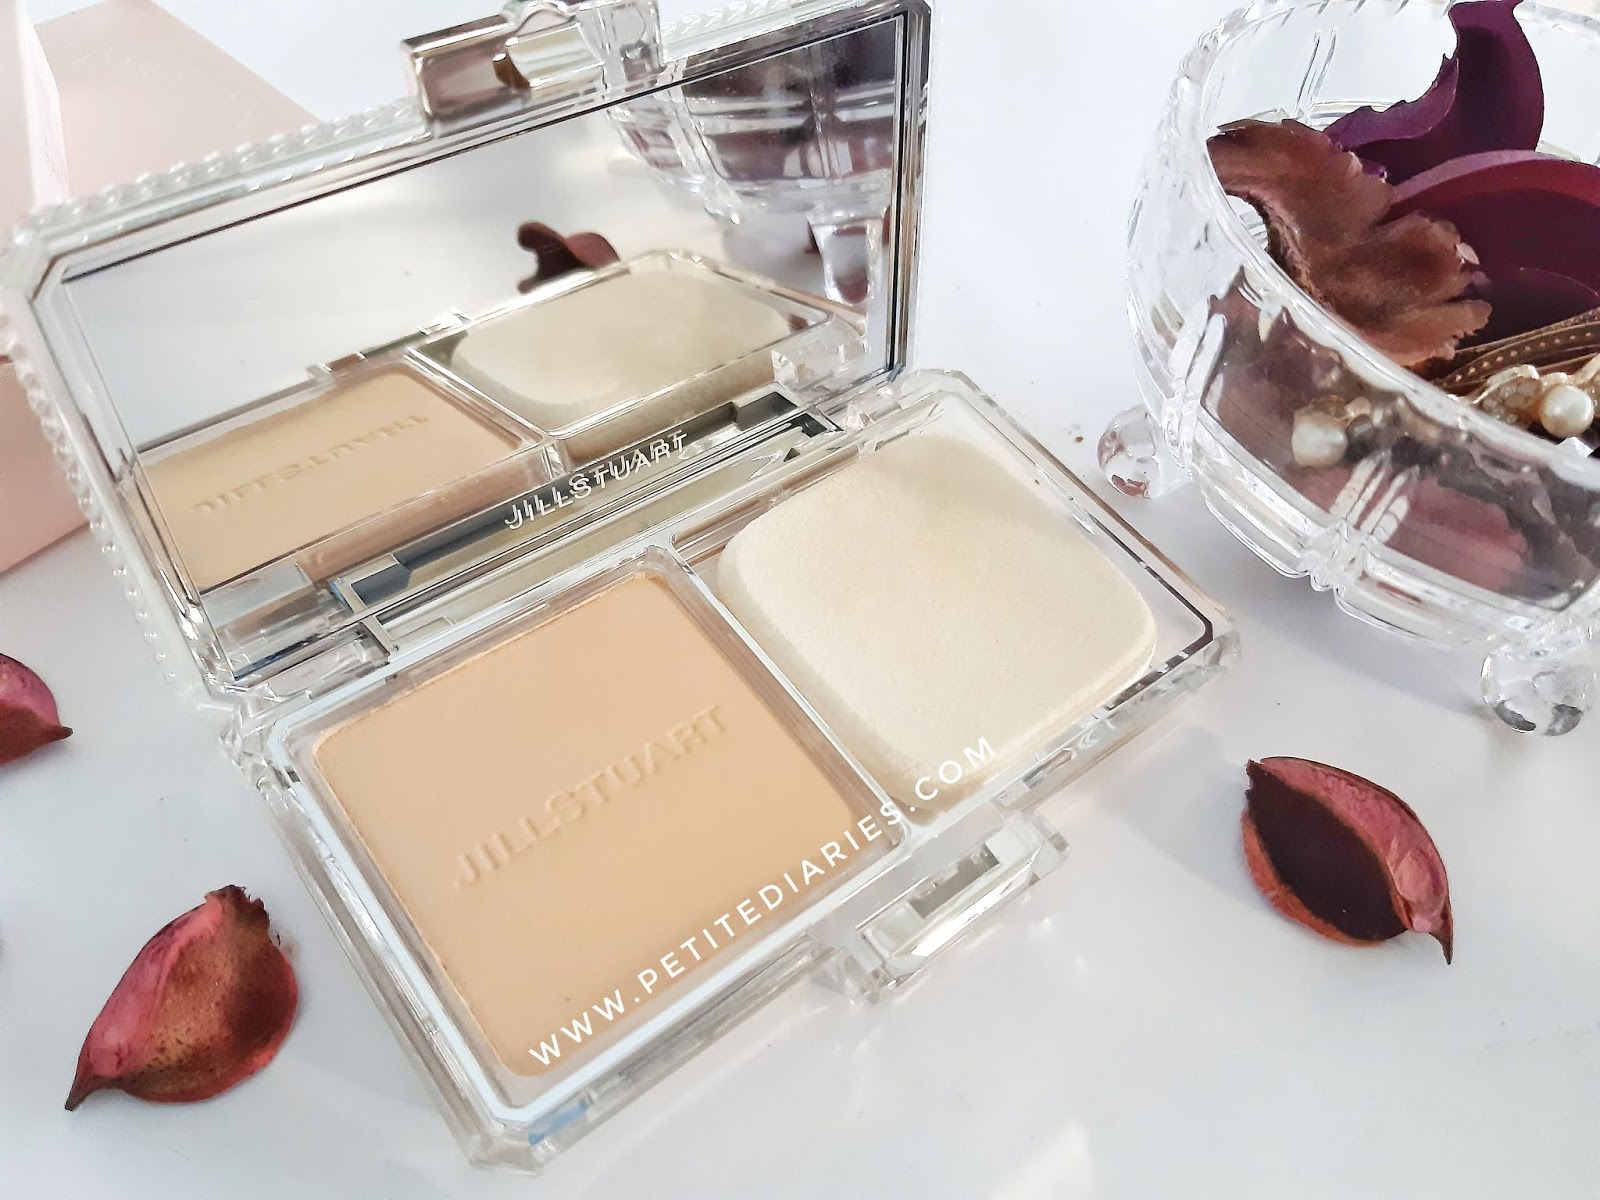 review japanese make up jill stuart airy stay flawless powder foundation